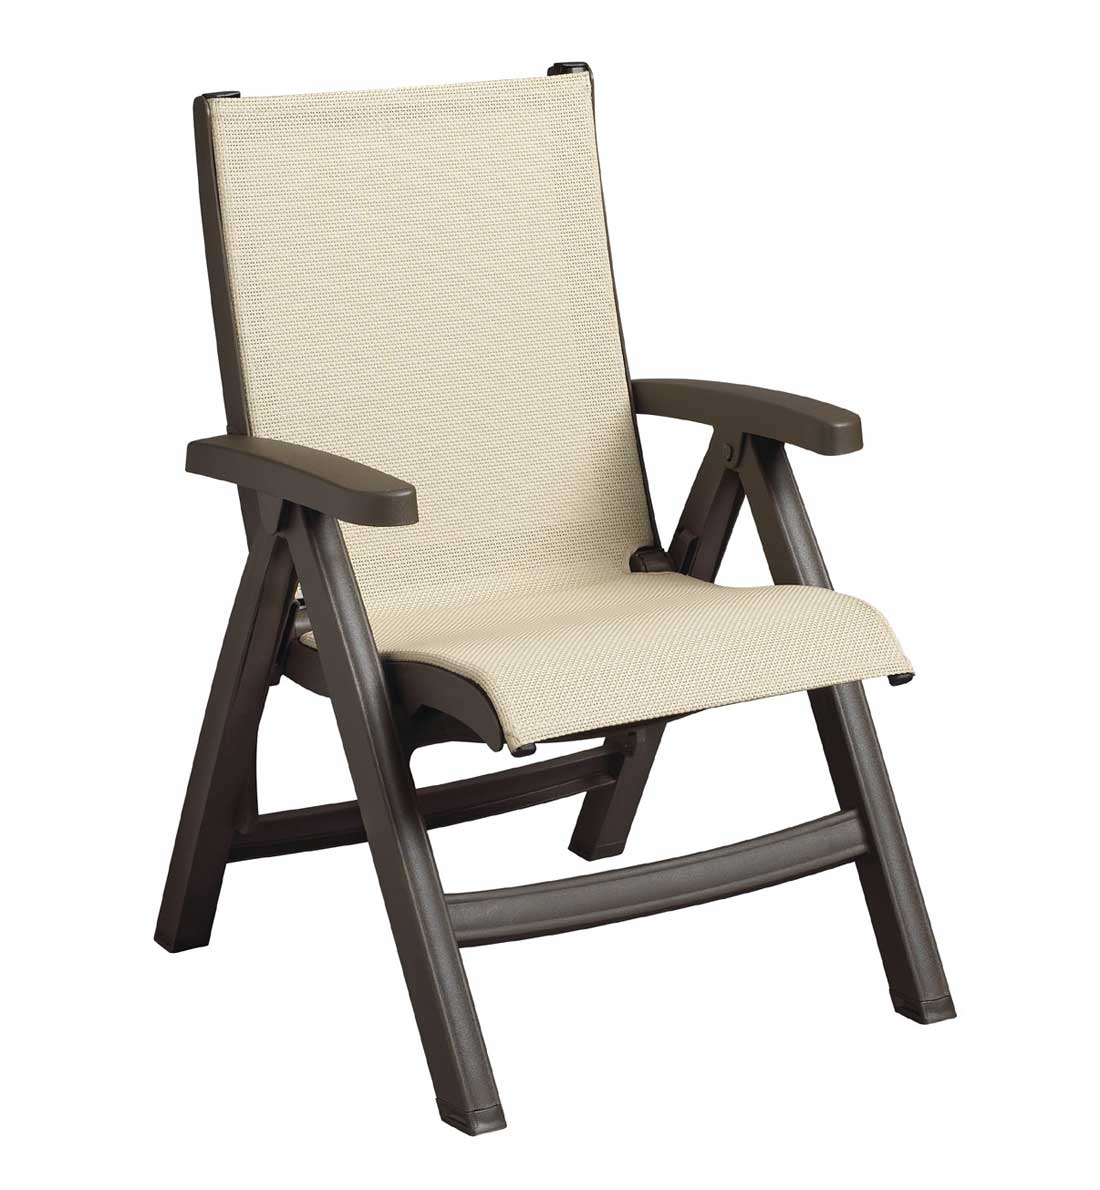 outdoor folding chairs  Office Furniture